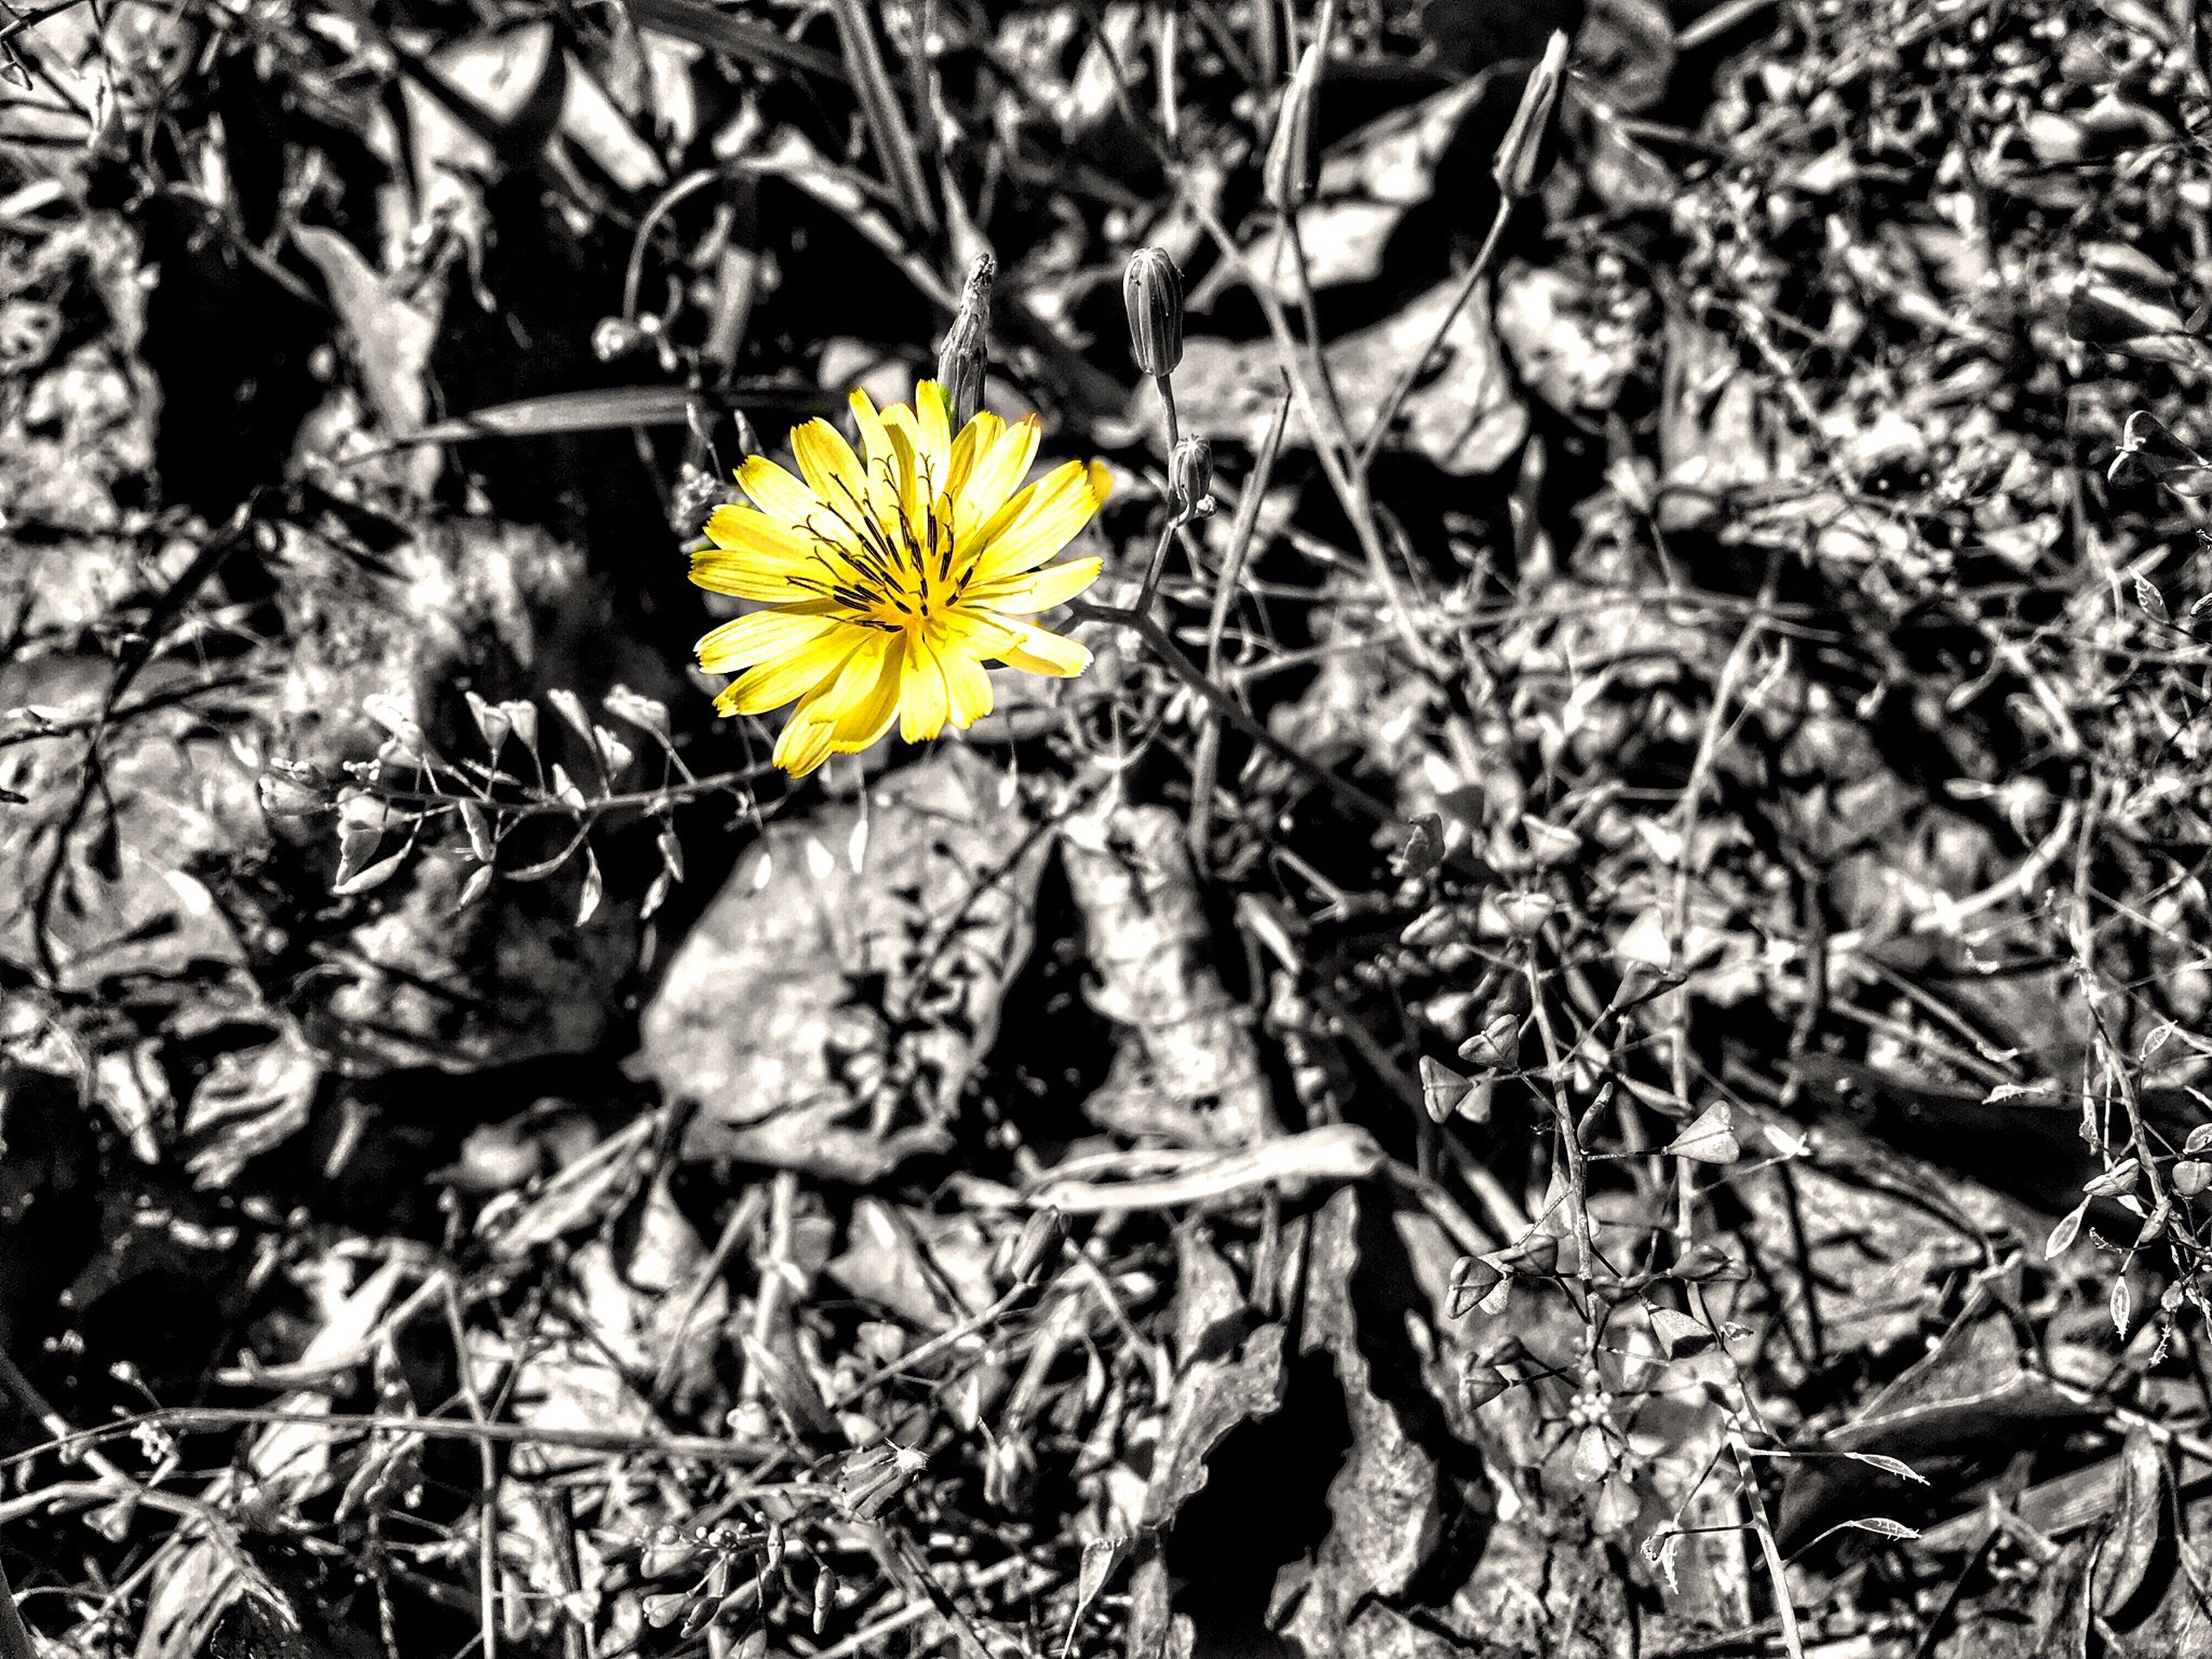 yellow, flower, fragility, growth, nature, plant, petal, freshness, close-up, beauty in nature, high angle view, field, flower head, dry, blooming, focus on foreground, day, leaf, outdoors, no people